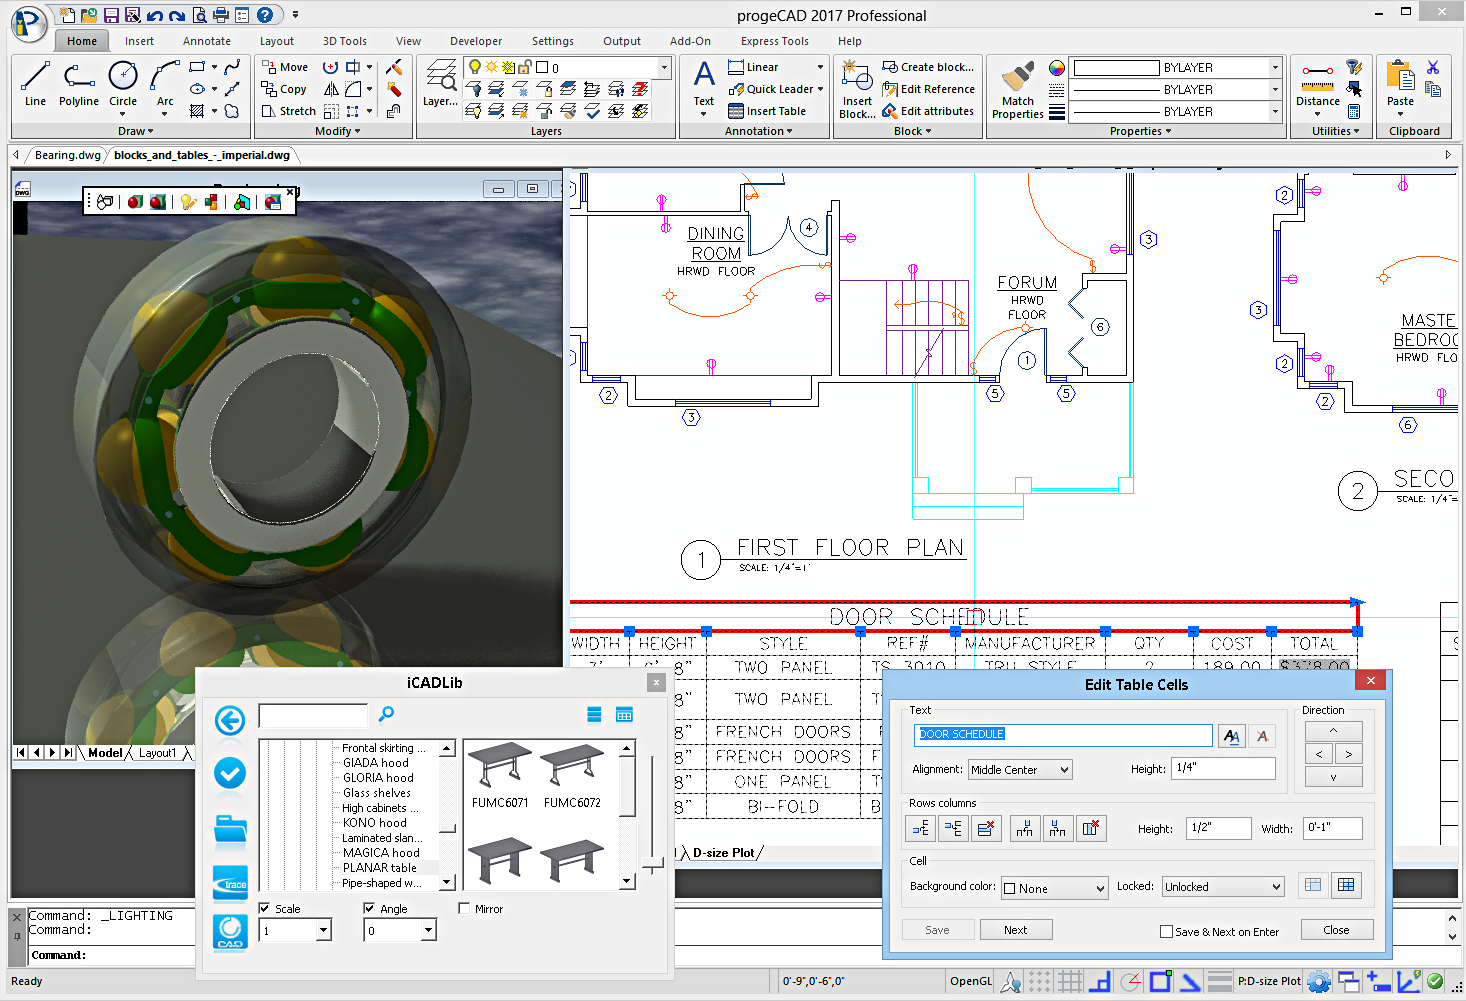 Progecad 2018 professional cad software 18 0 2 8 free for Online cad drawing software